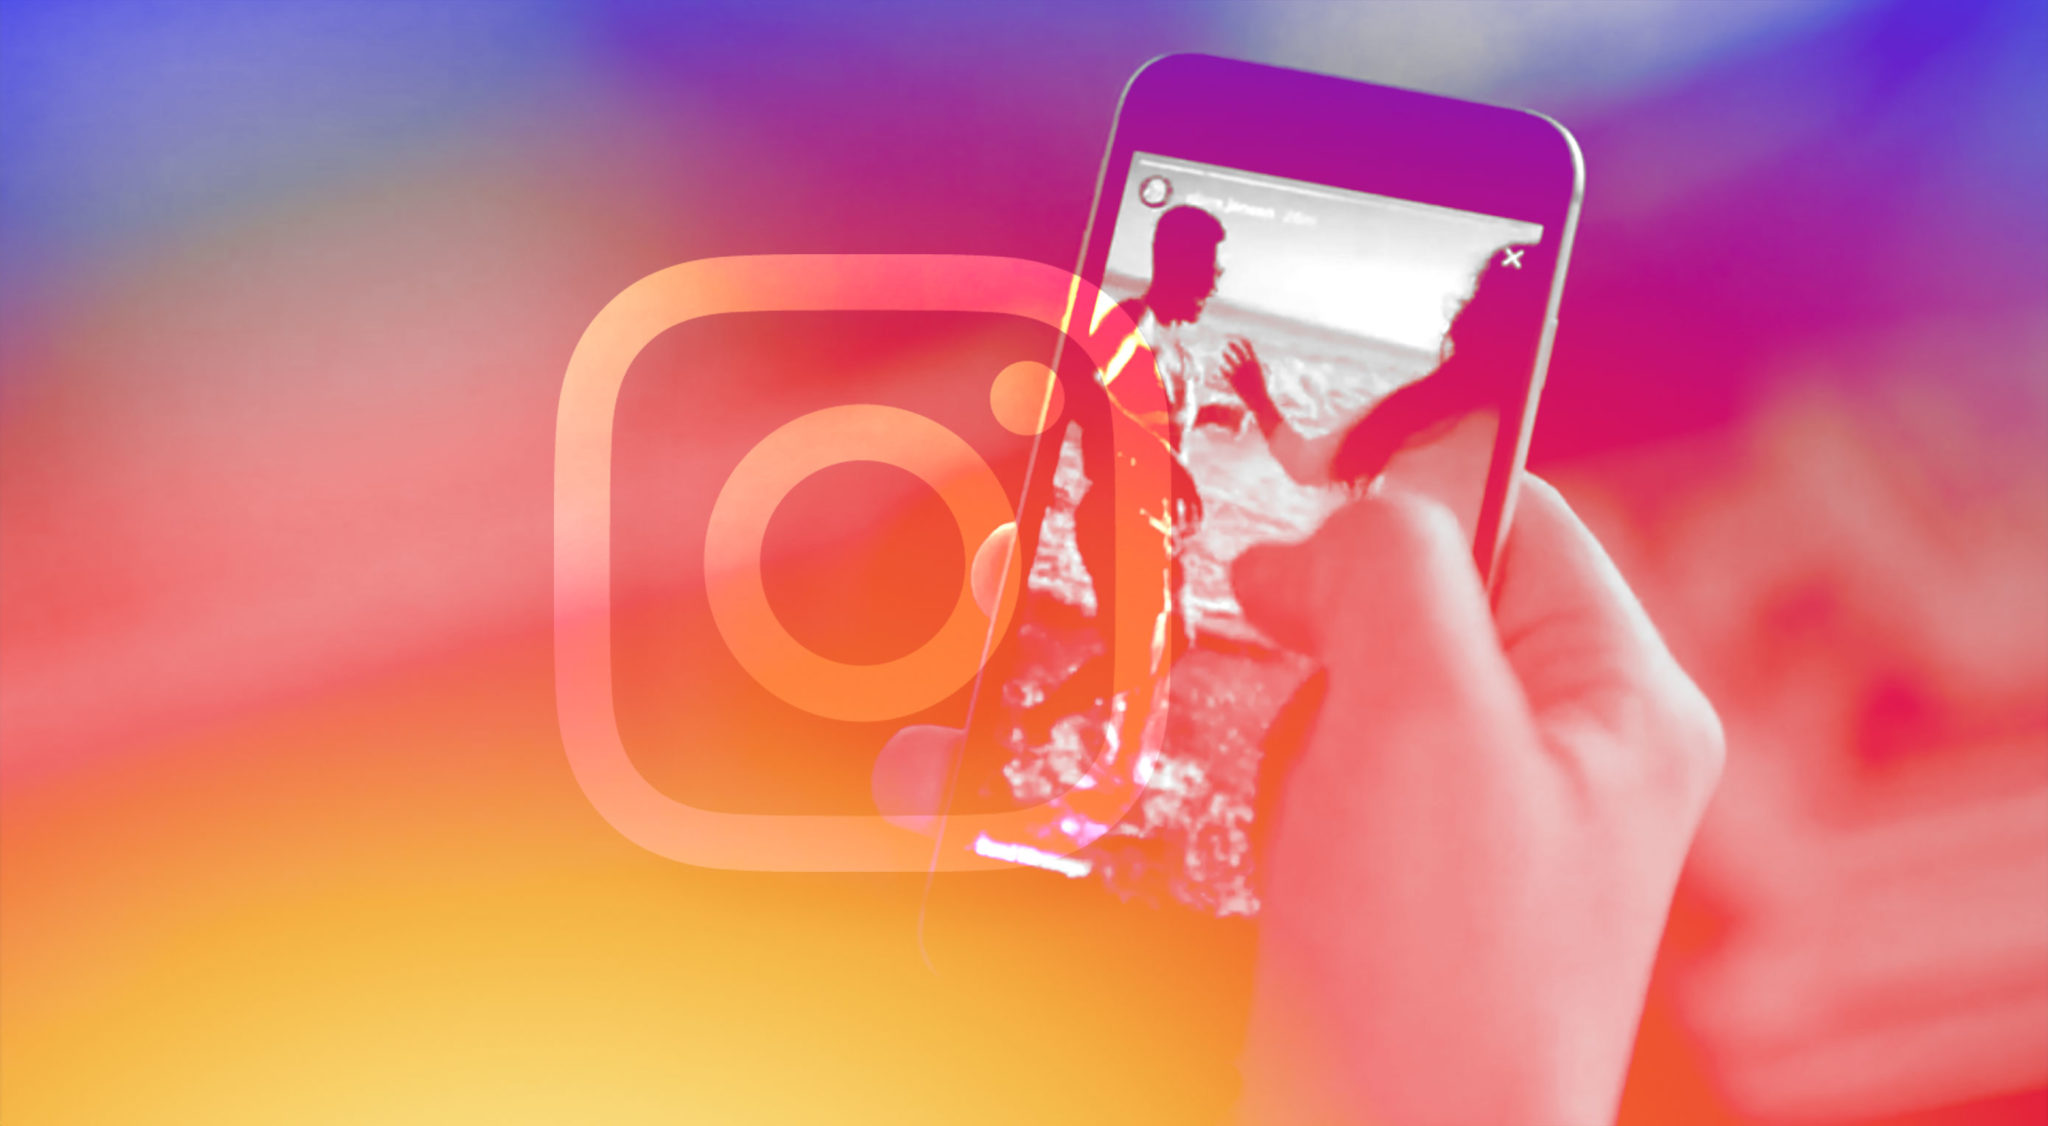 Les Stories de Instagram arrivent sur la version Web